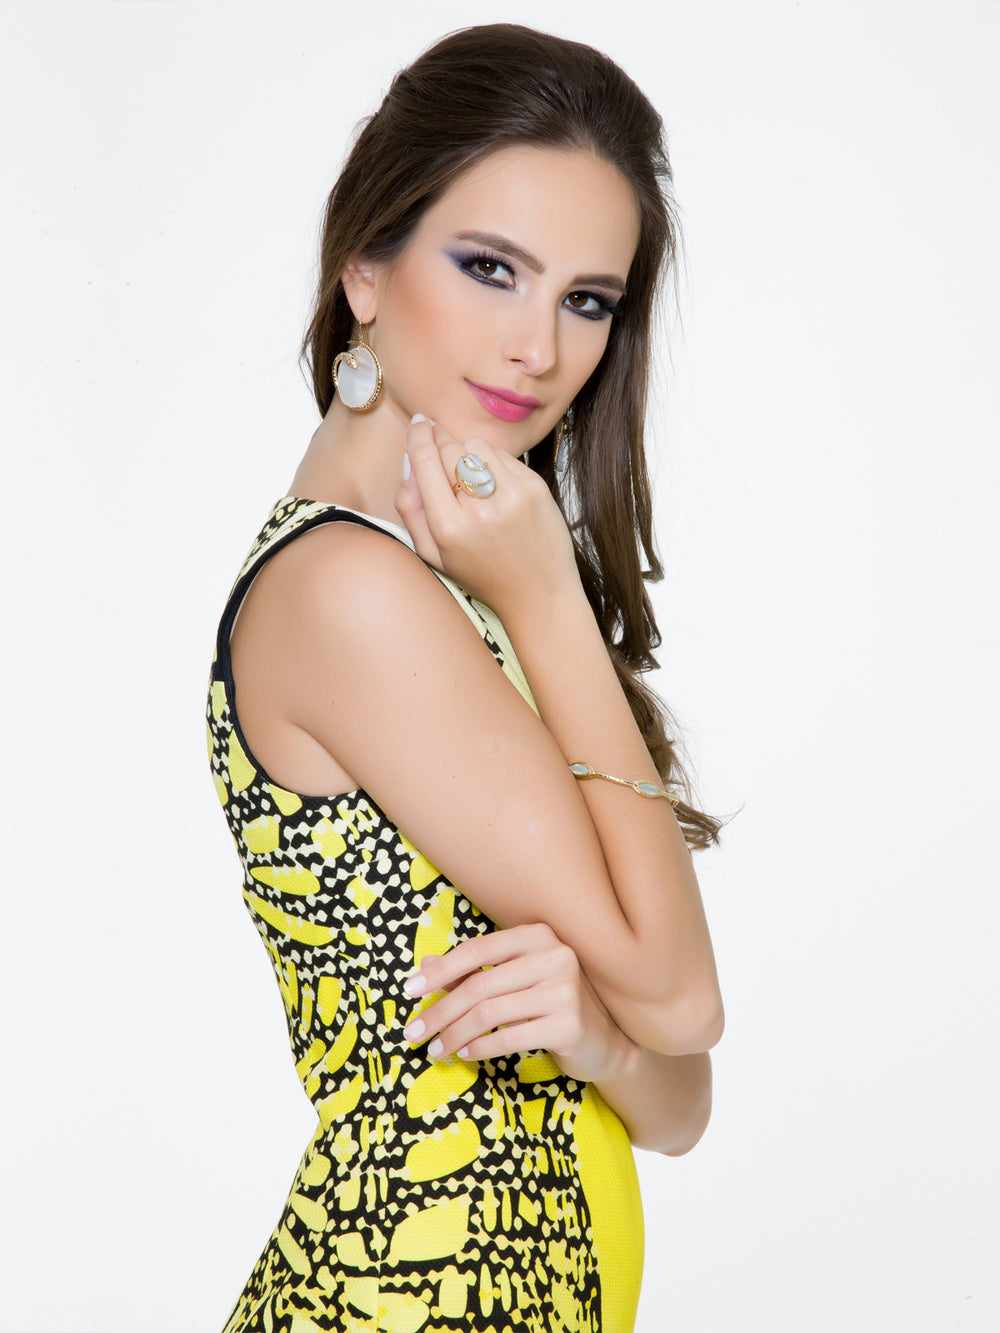 Yellow/White Dress, BYBLOS - elilhaam.com